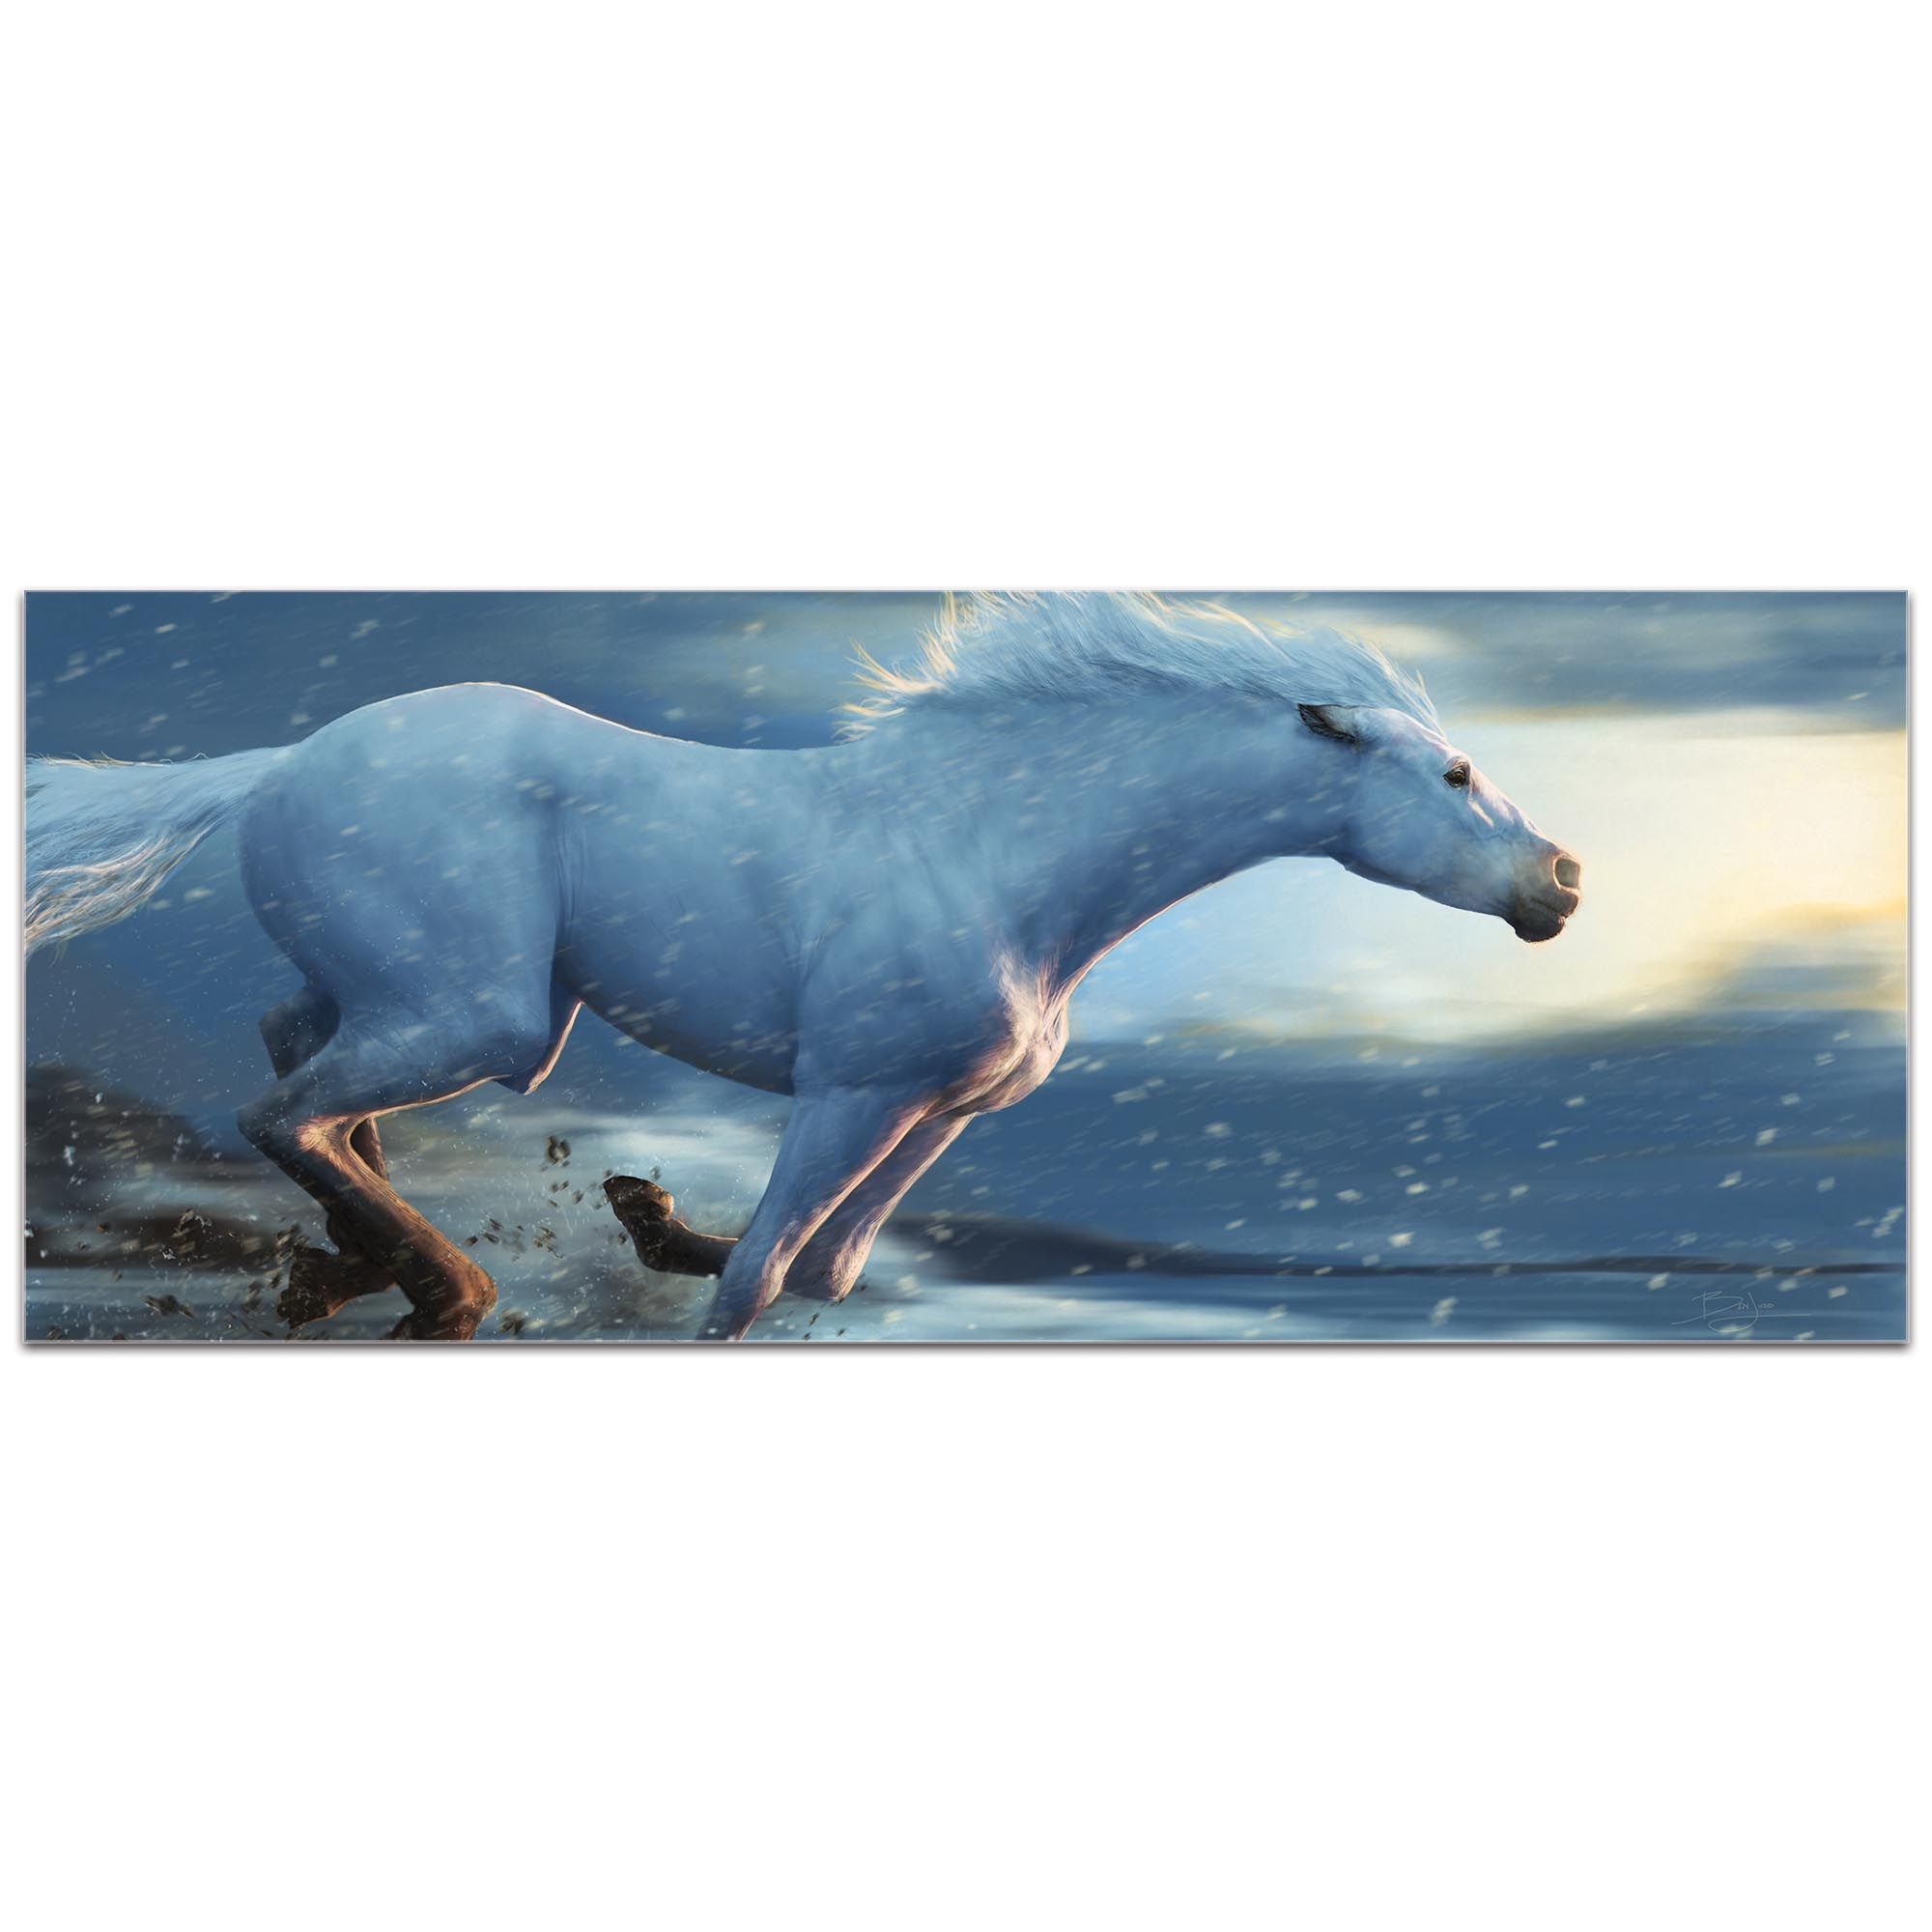 Expressionist Wall Art 'Running Horse' - Wildlife Decor on Metal or Plexiglass - Image 2